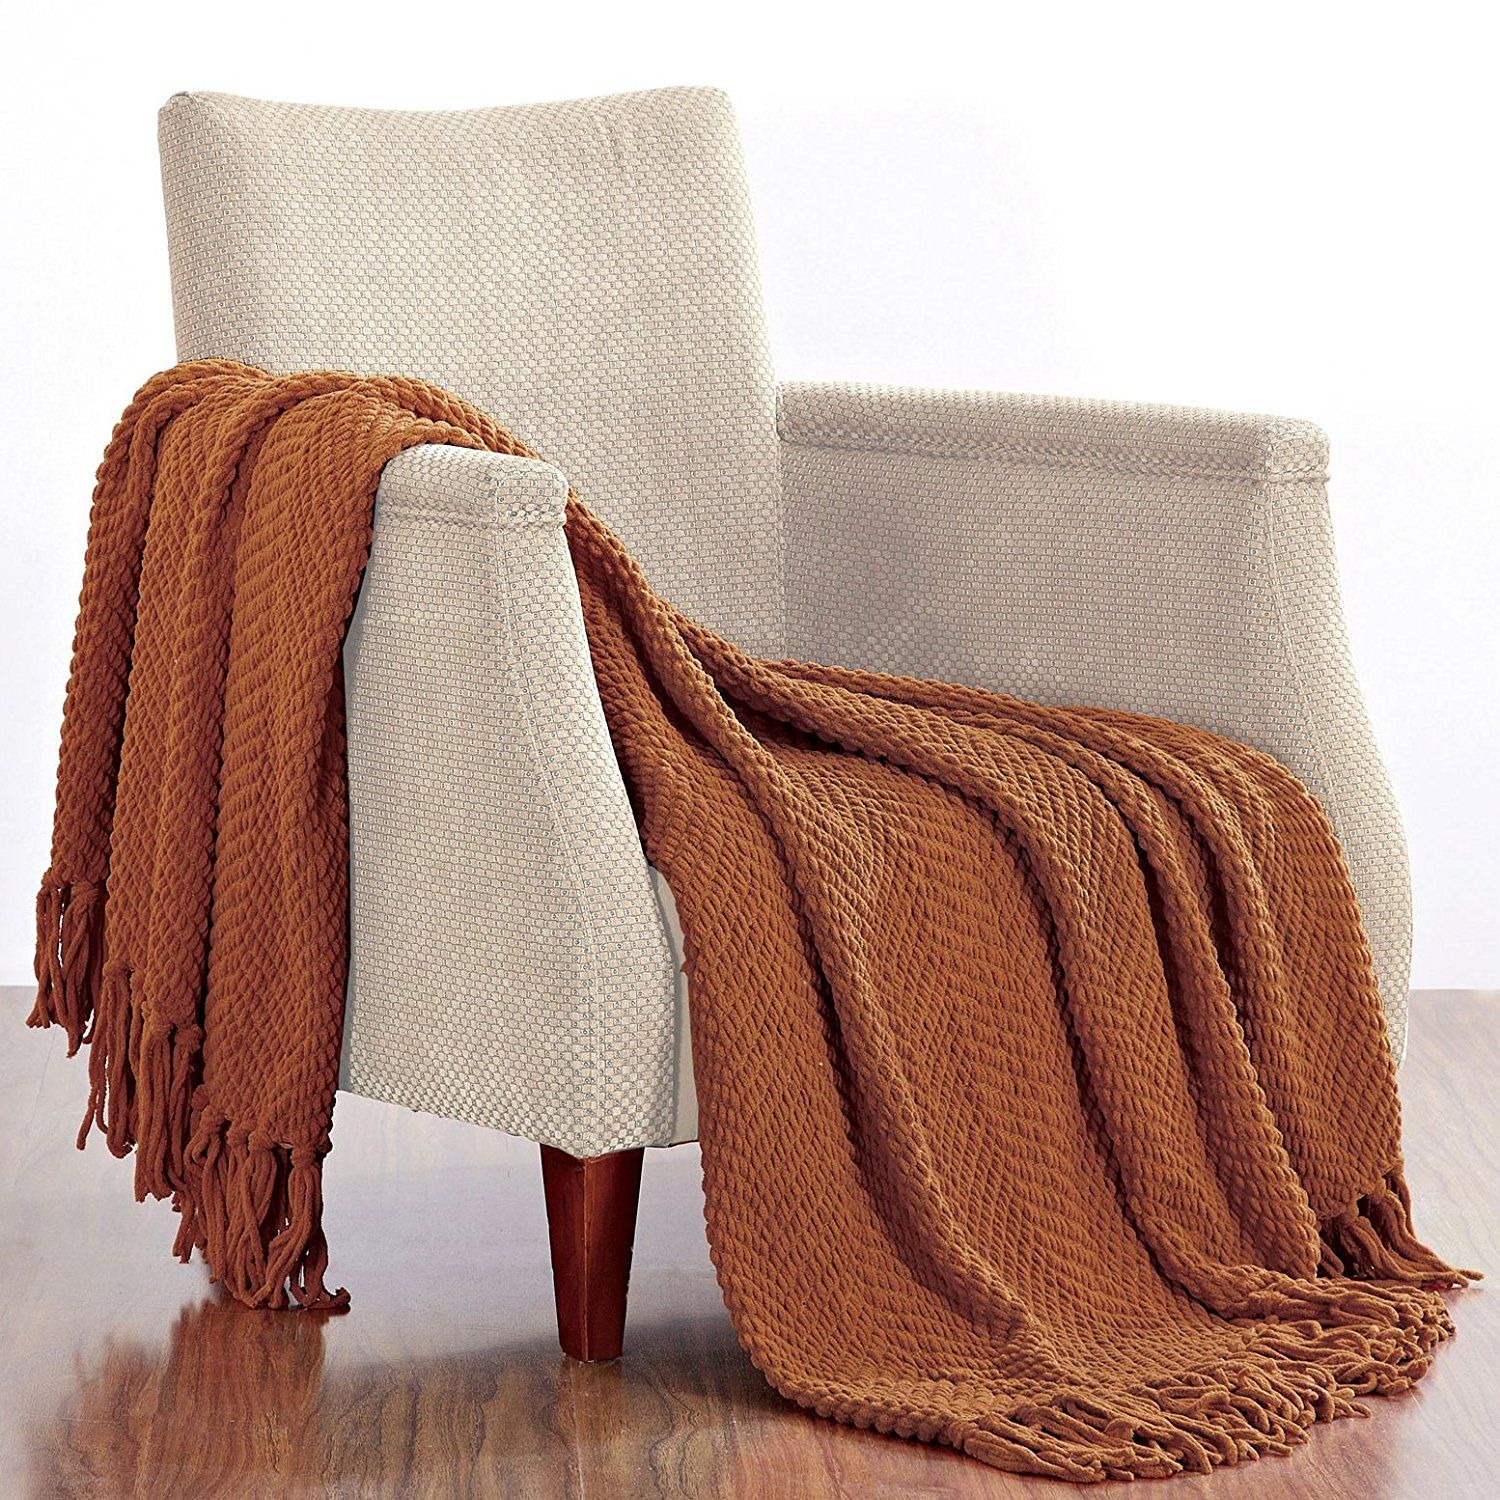 Throw Blankets For Couches Best Boon Knitted Tweed Throw Couch Cover Blanket 50 X 60 Rust  Throw Design Decoration